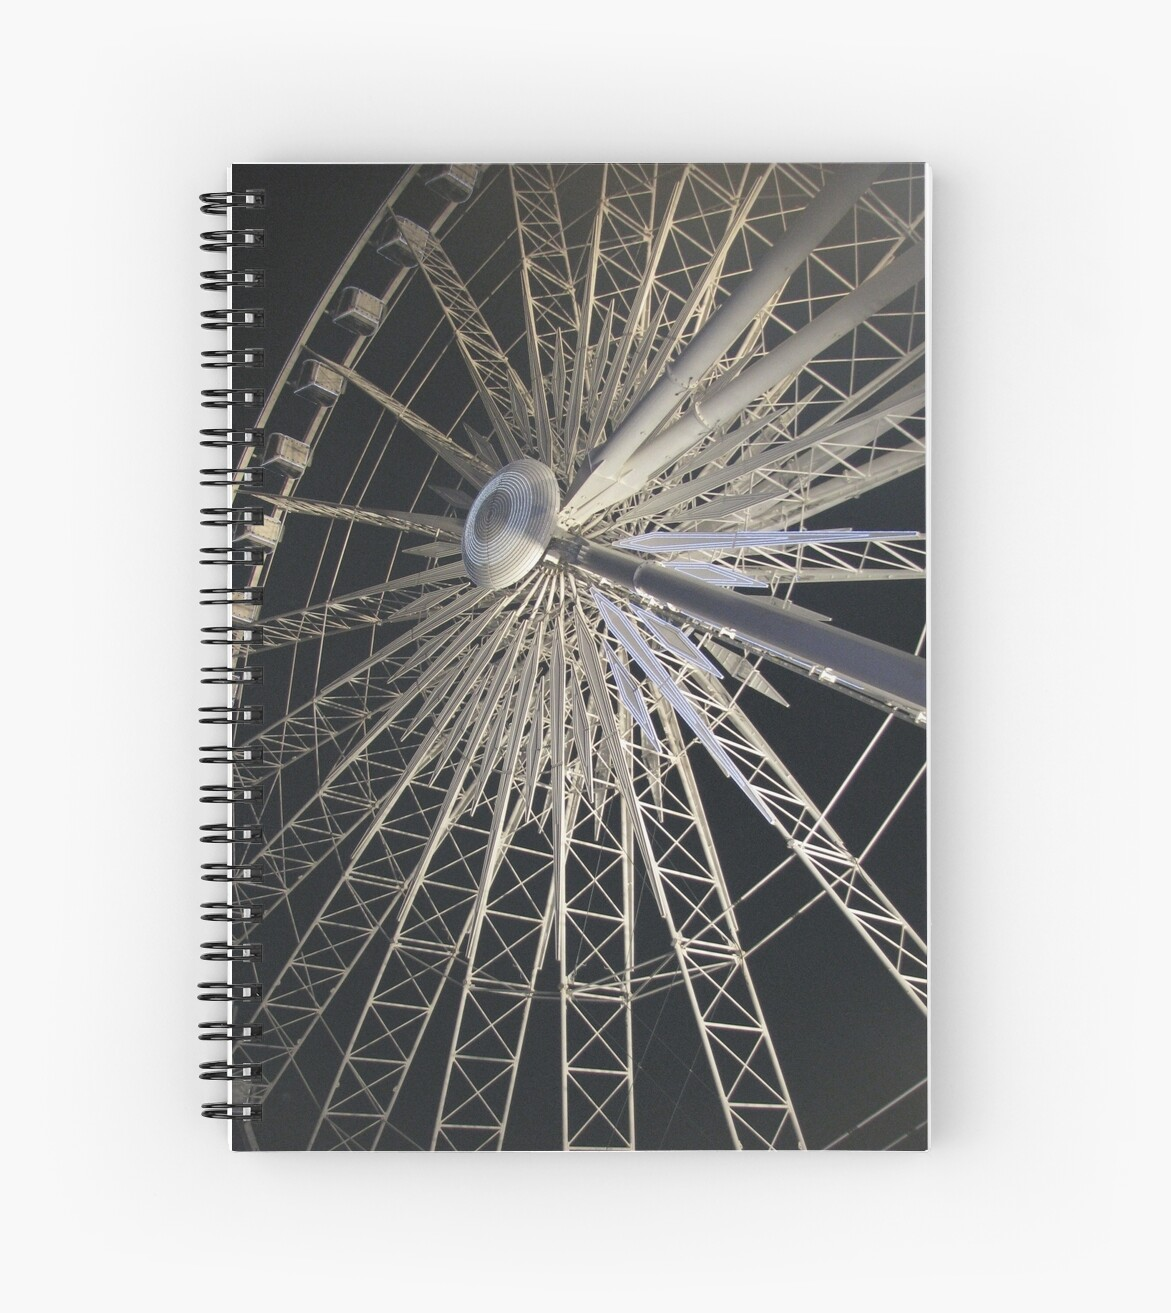 Ferris Wheel-Available As Art Prints-Mugs,Cases,Duvets,T Shirts,Stickers,etc by Robert Burns